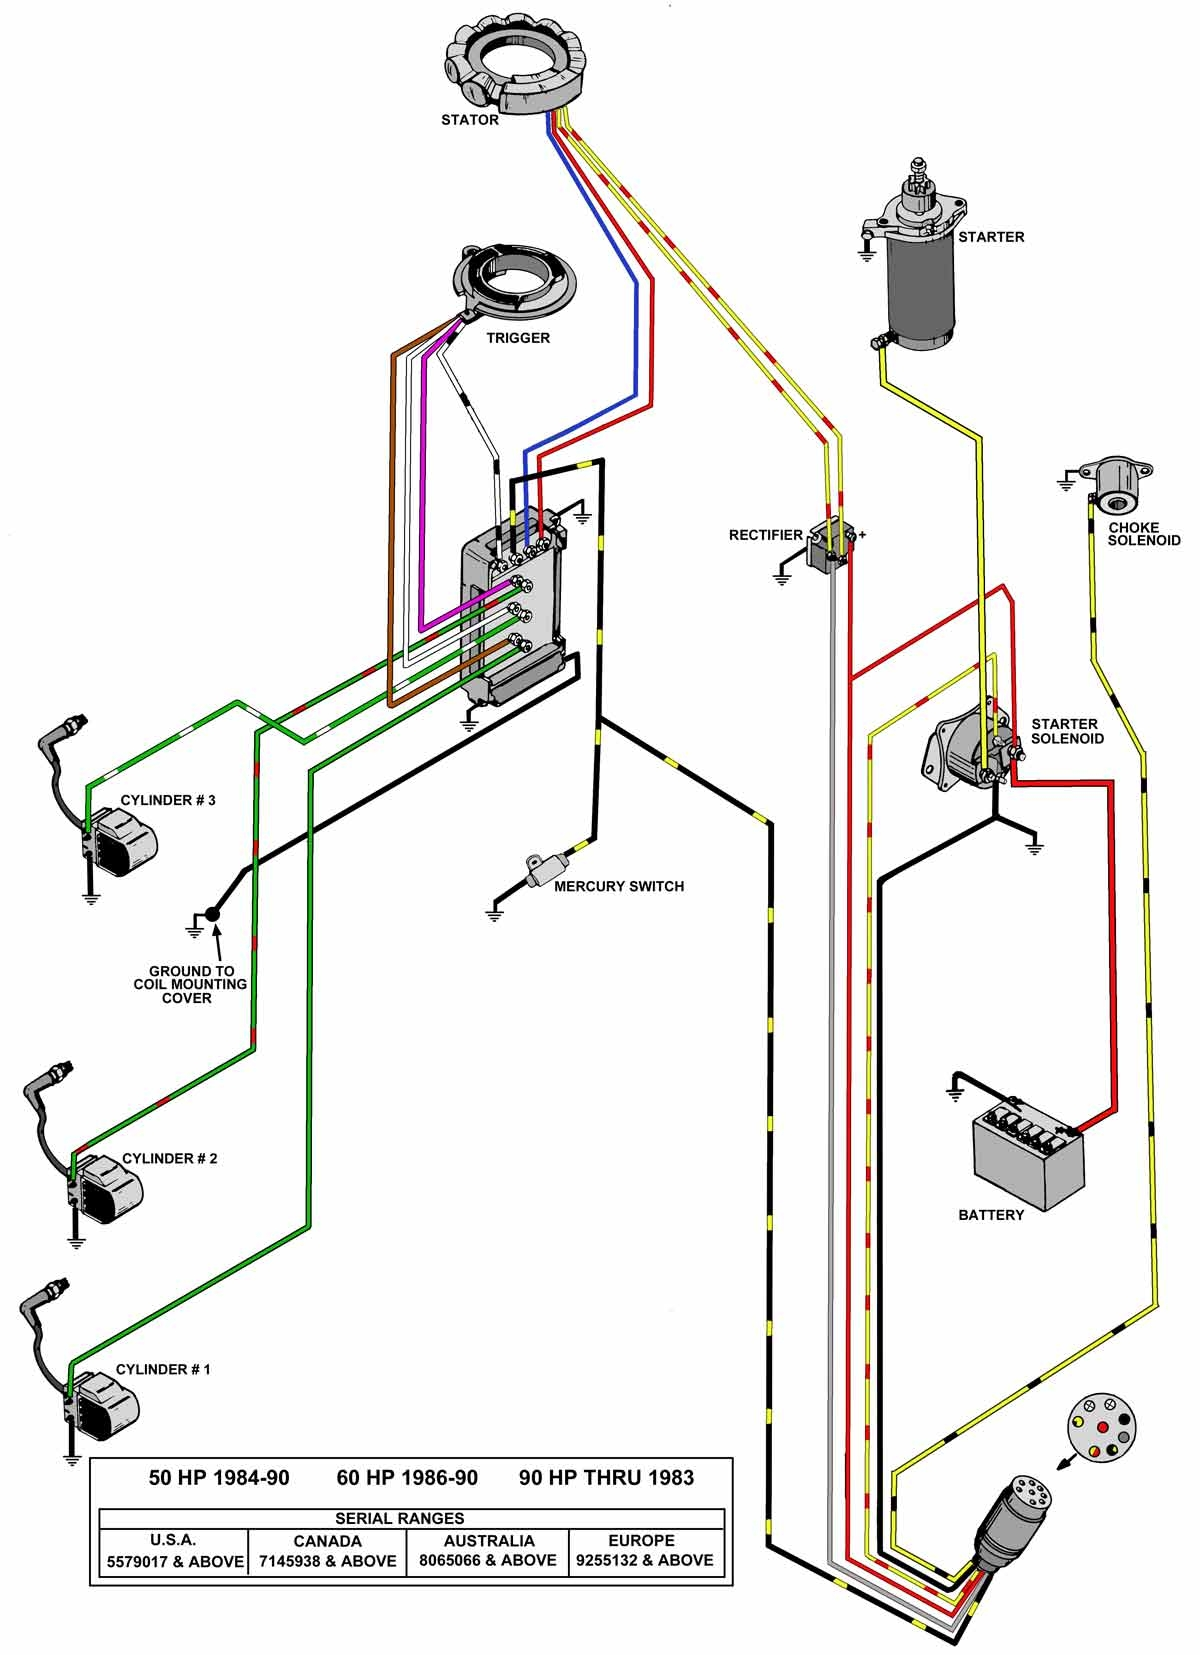 yamaha outboard tachometer wiring diagram Download-mercury outboard wiring diagrams mastertech marin rh maxrules 50 HP Mercury Outboard Wiring Diagram Mercury Outboard Wiring Schematic Diagram 20-r